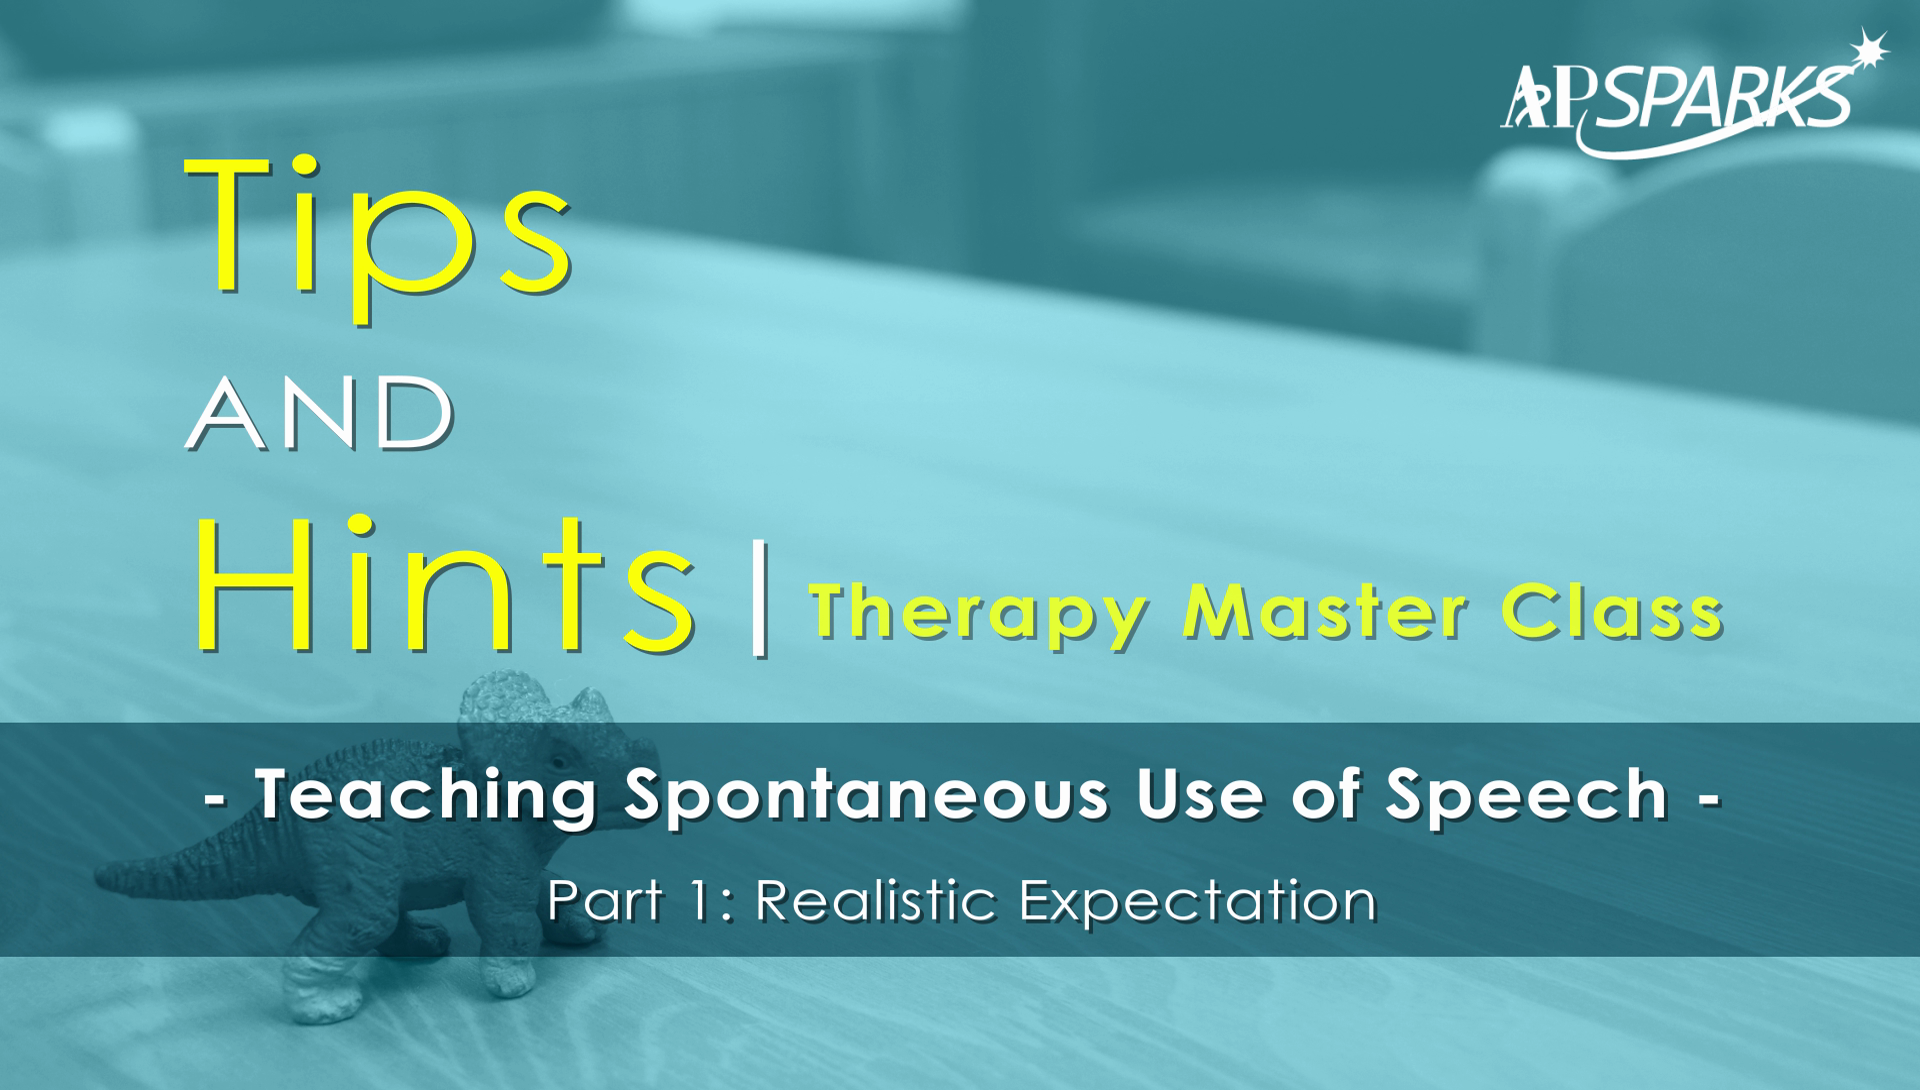 Teaching Spontaneous Use Of Speech: P1 Realistic Expectation – APSPARKS